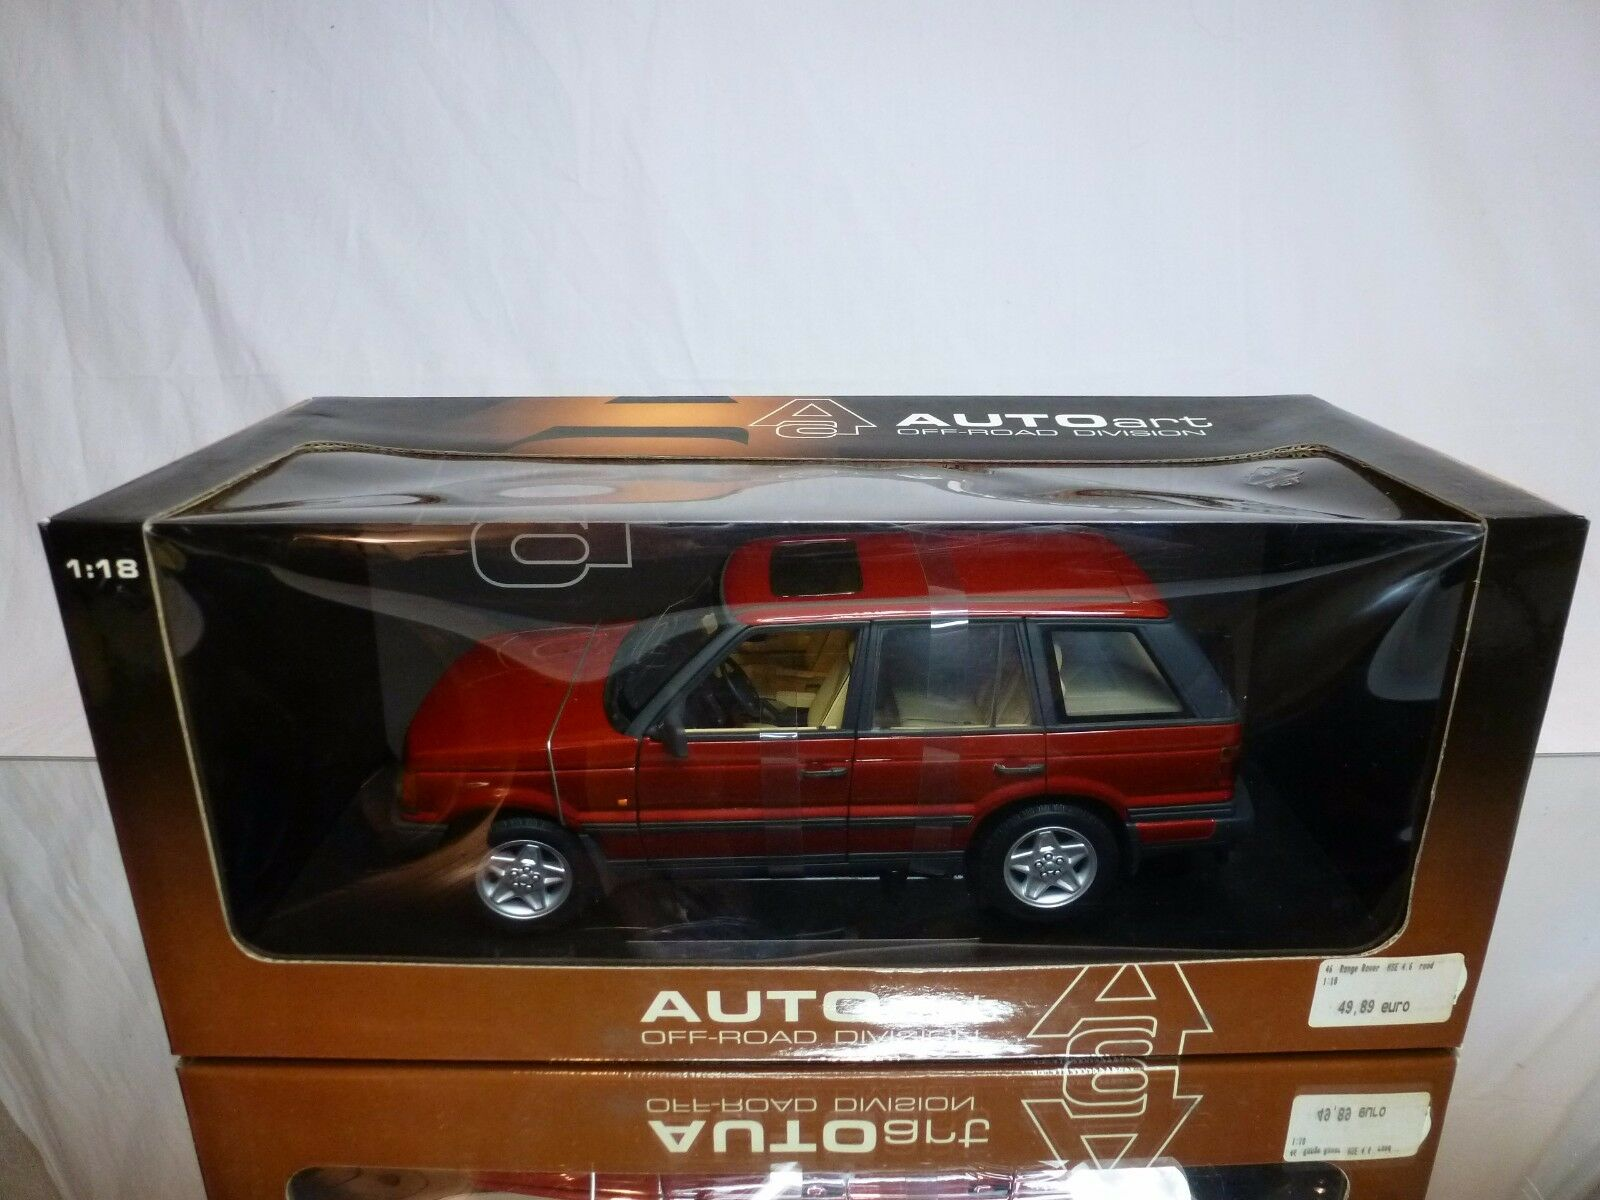 AUTOART 70012 RANGE ROVER 4.6 HSE LHD - rosso 1 18 - BOXED + TRANSPORT STRAPS CAR